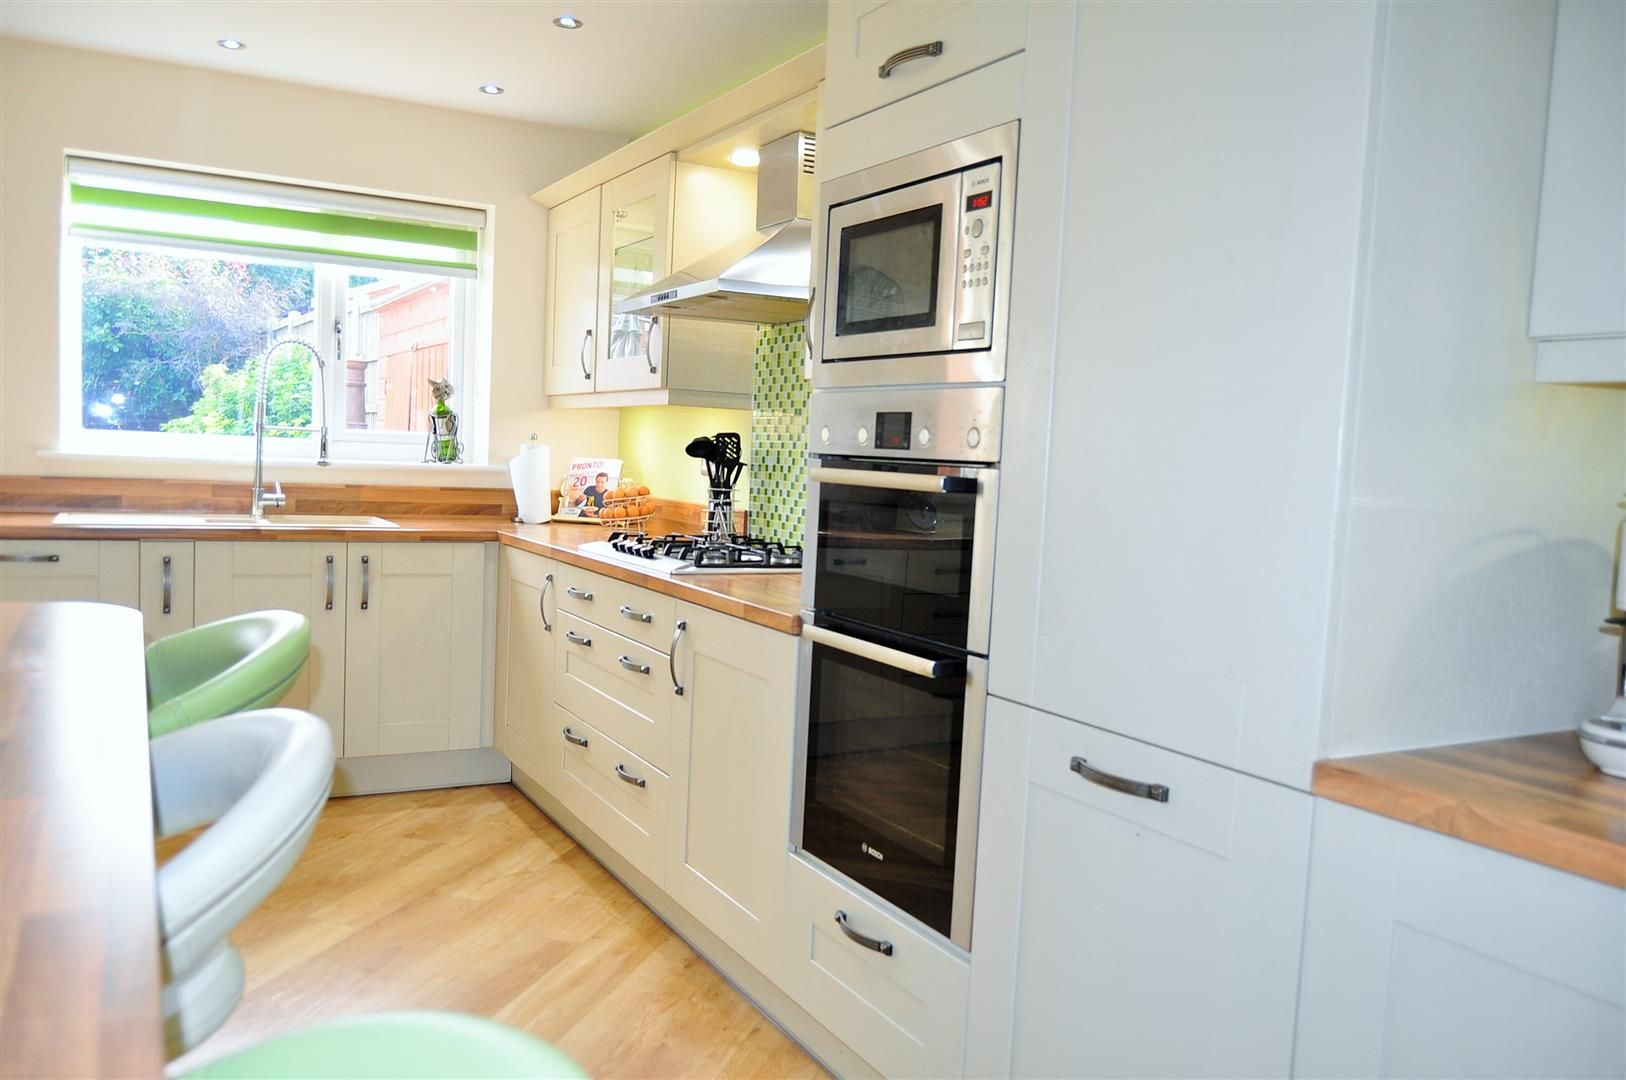 4 bed semi-detached for sale  - Property Image 8